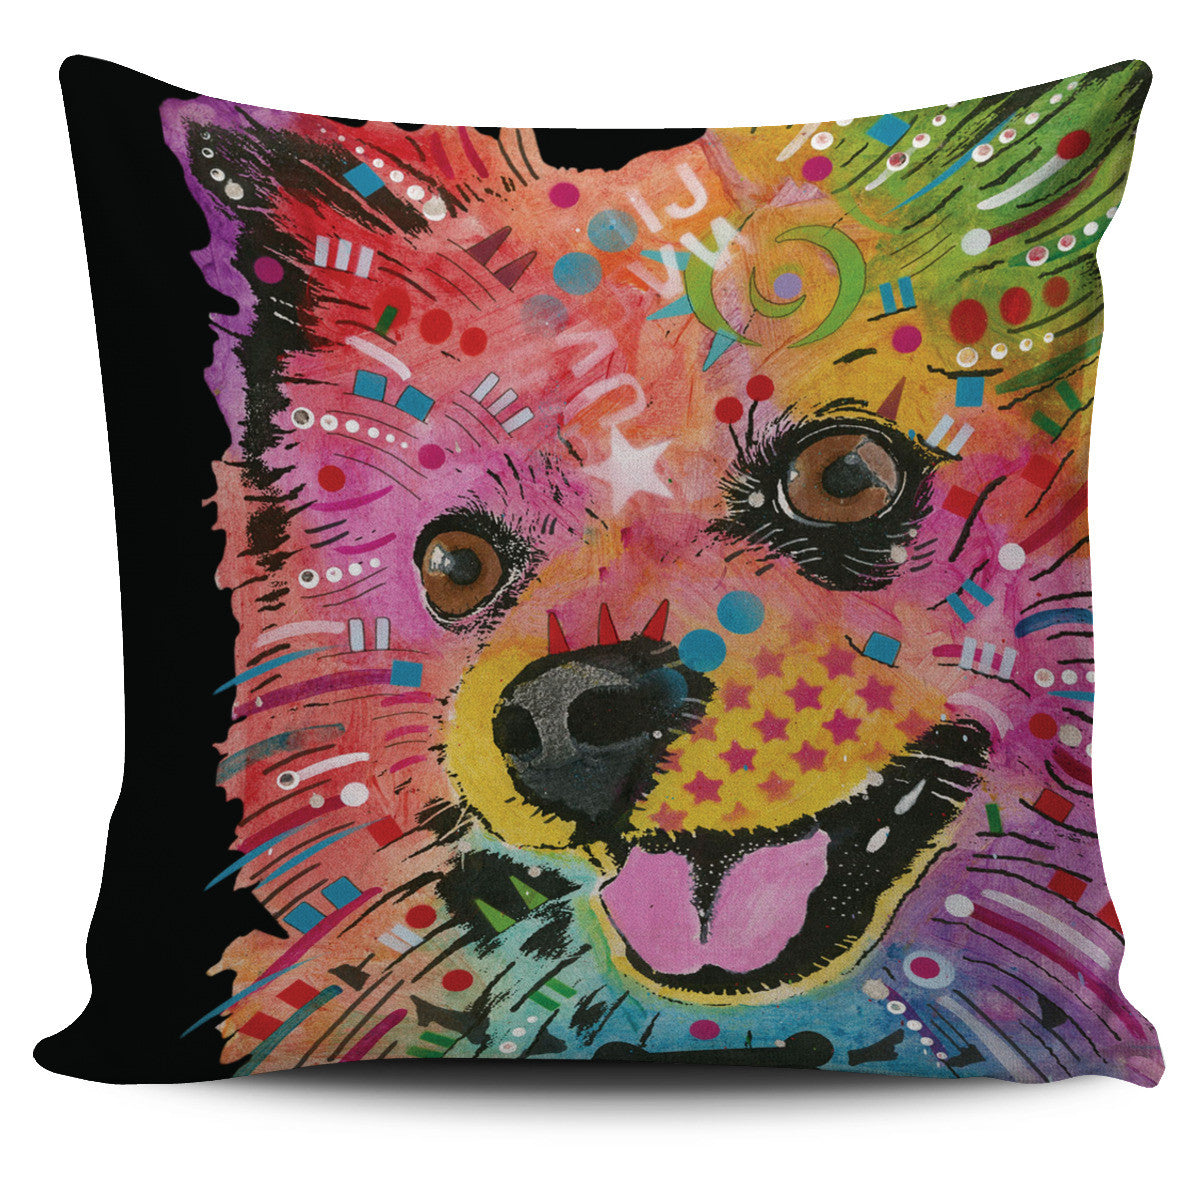 Pomeranian Series Pillow Covers Offer